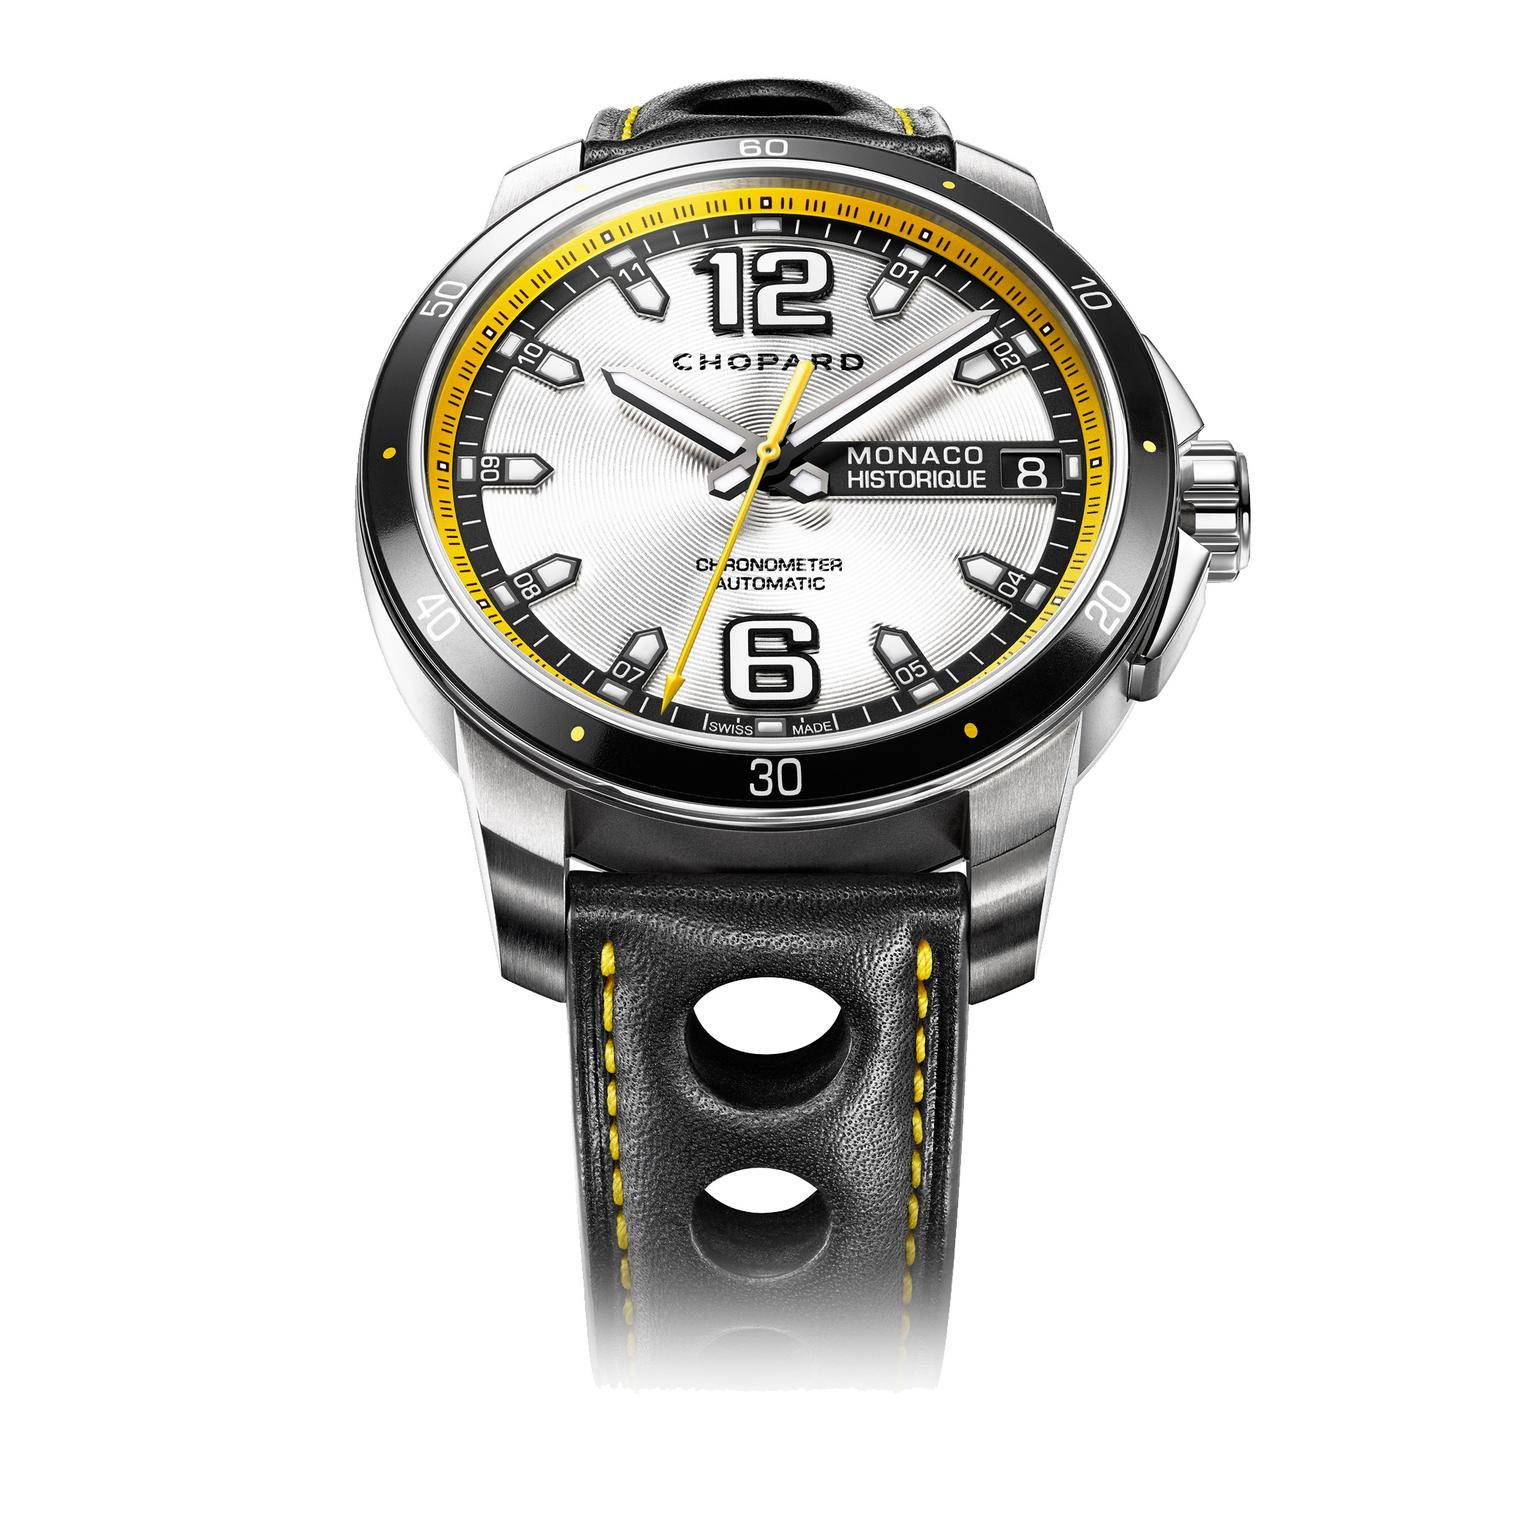 Chopard-GPHM-Watch-Zoom